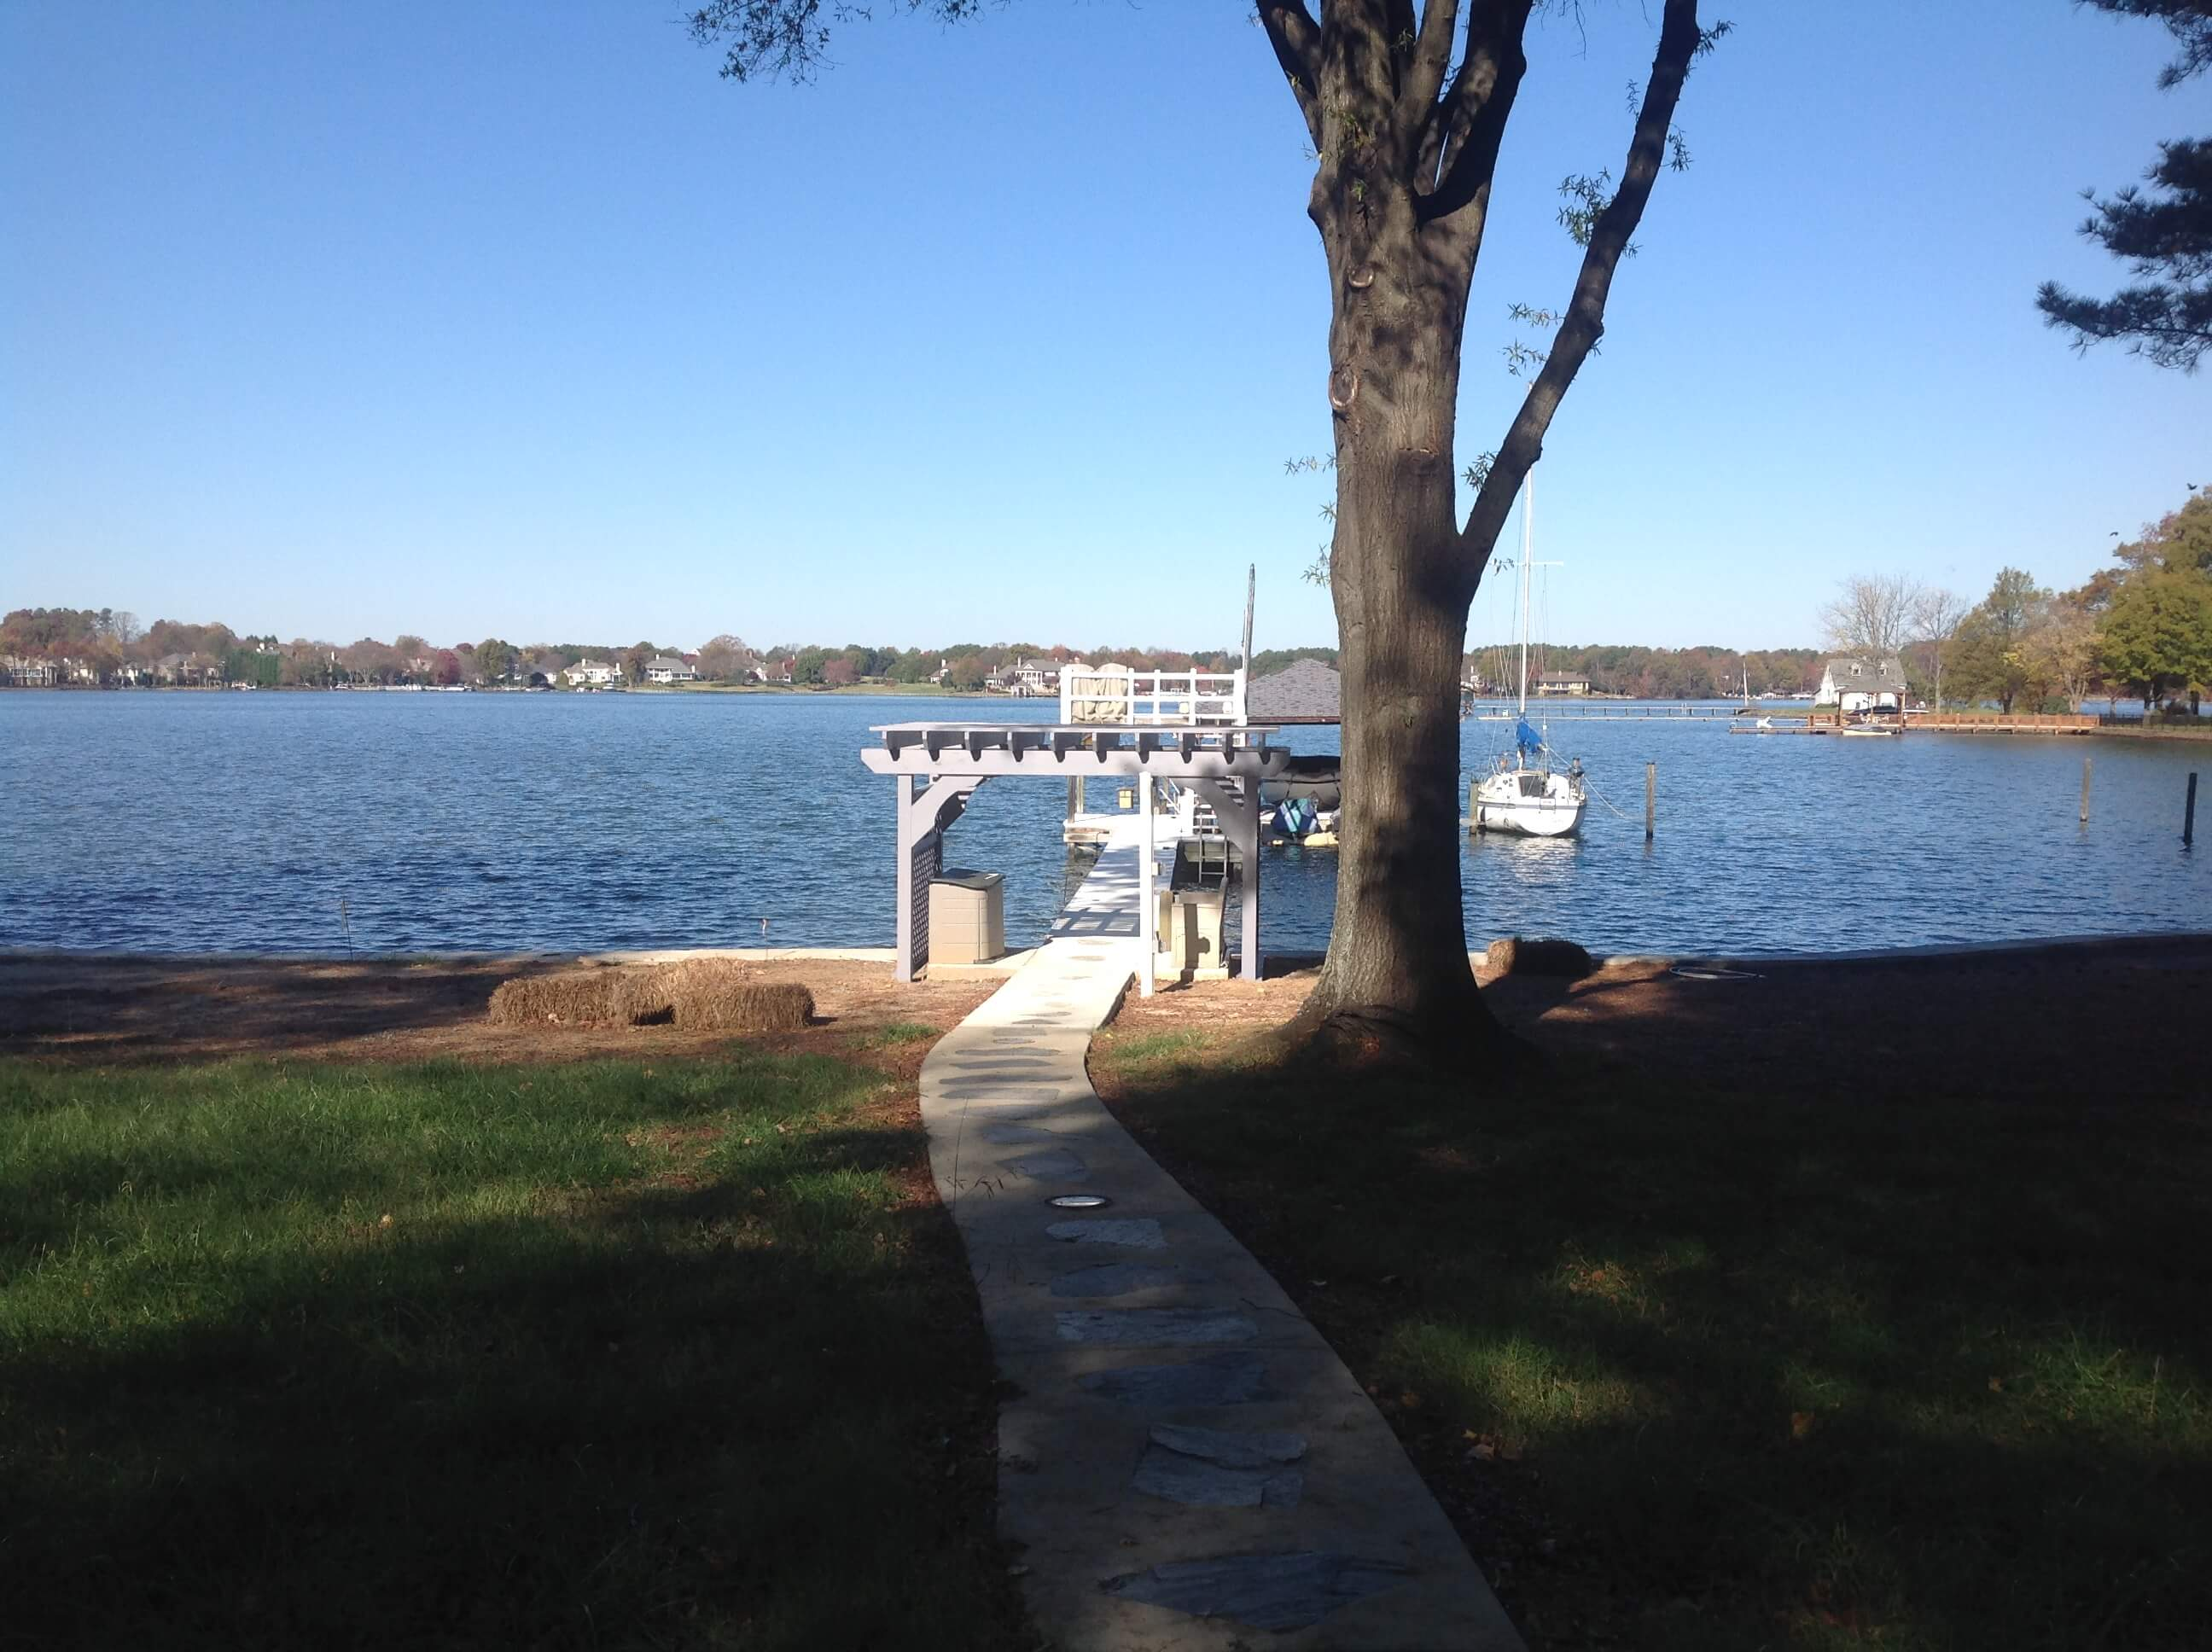 dock with boat